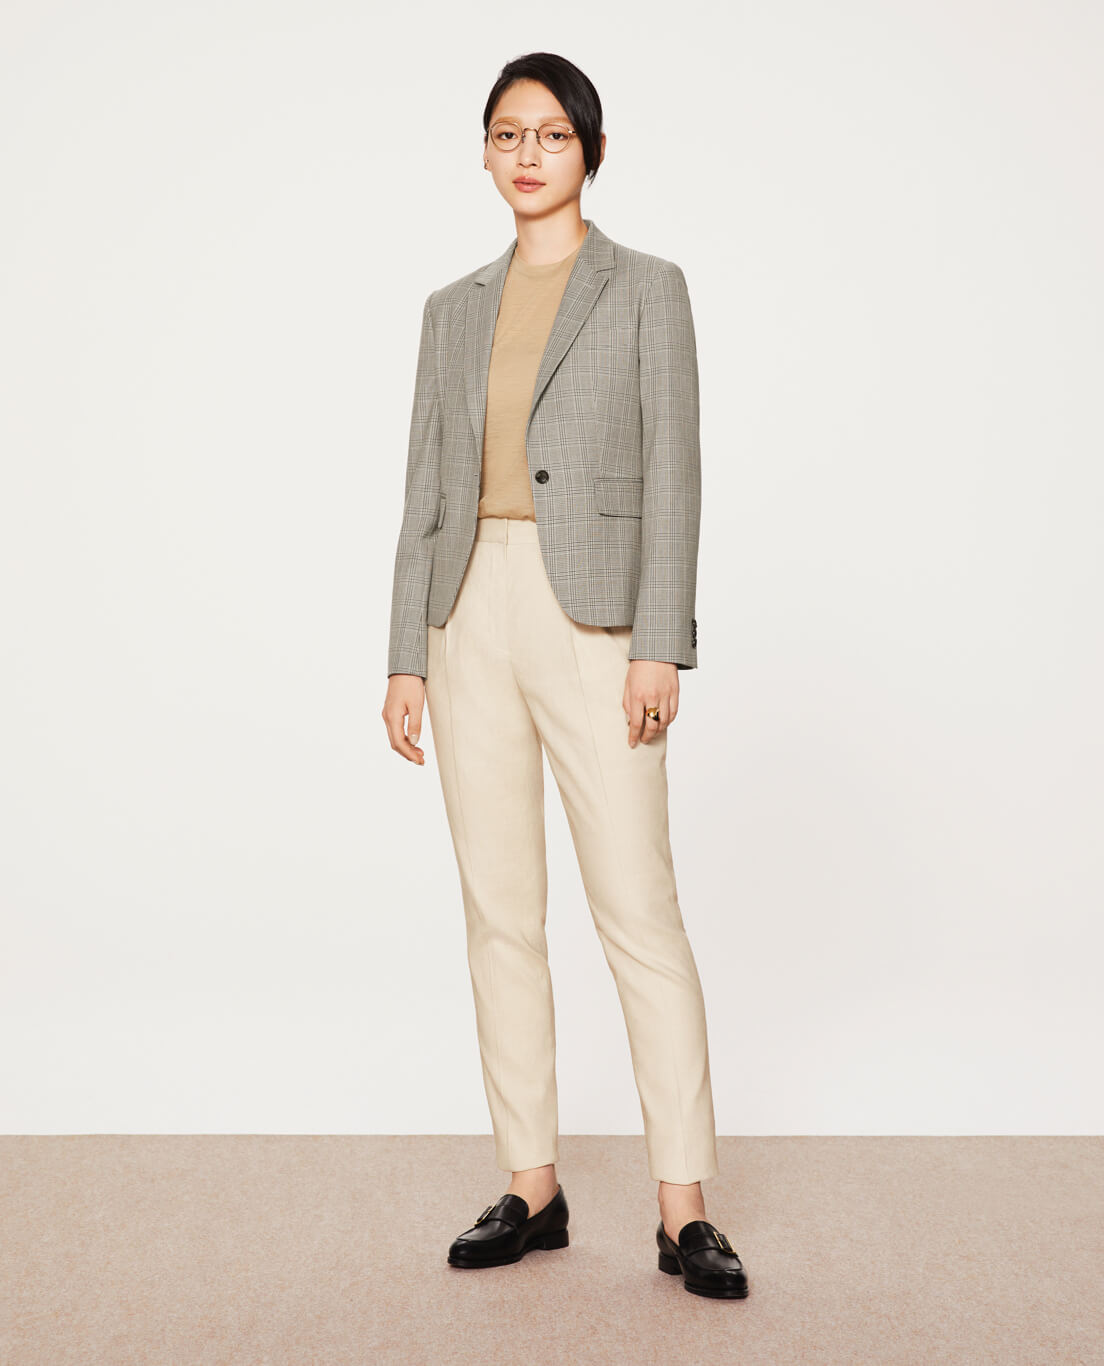 COMFORT TAILORED JACKET: 5601 / RIOPELE / WASHABLE / 2WAYSTRETCH / GLENCHECK,  TAPERED PANTS: 5456 / STRETCH / LINEN / VISCOSE / ECRU